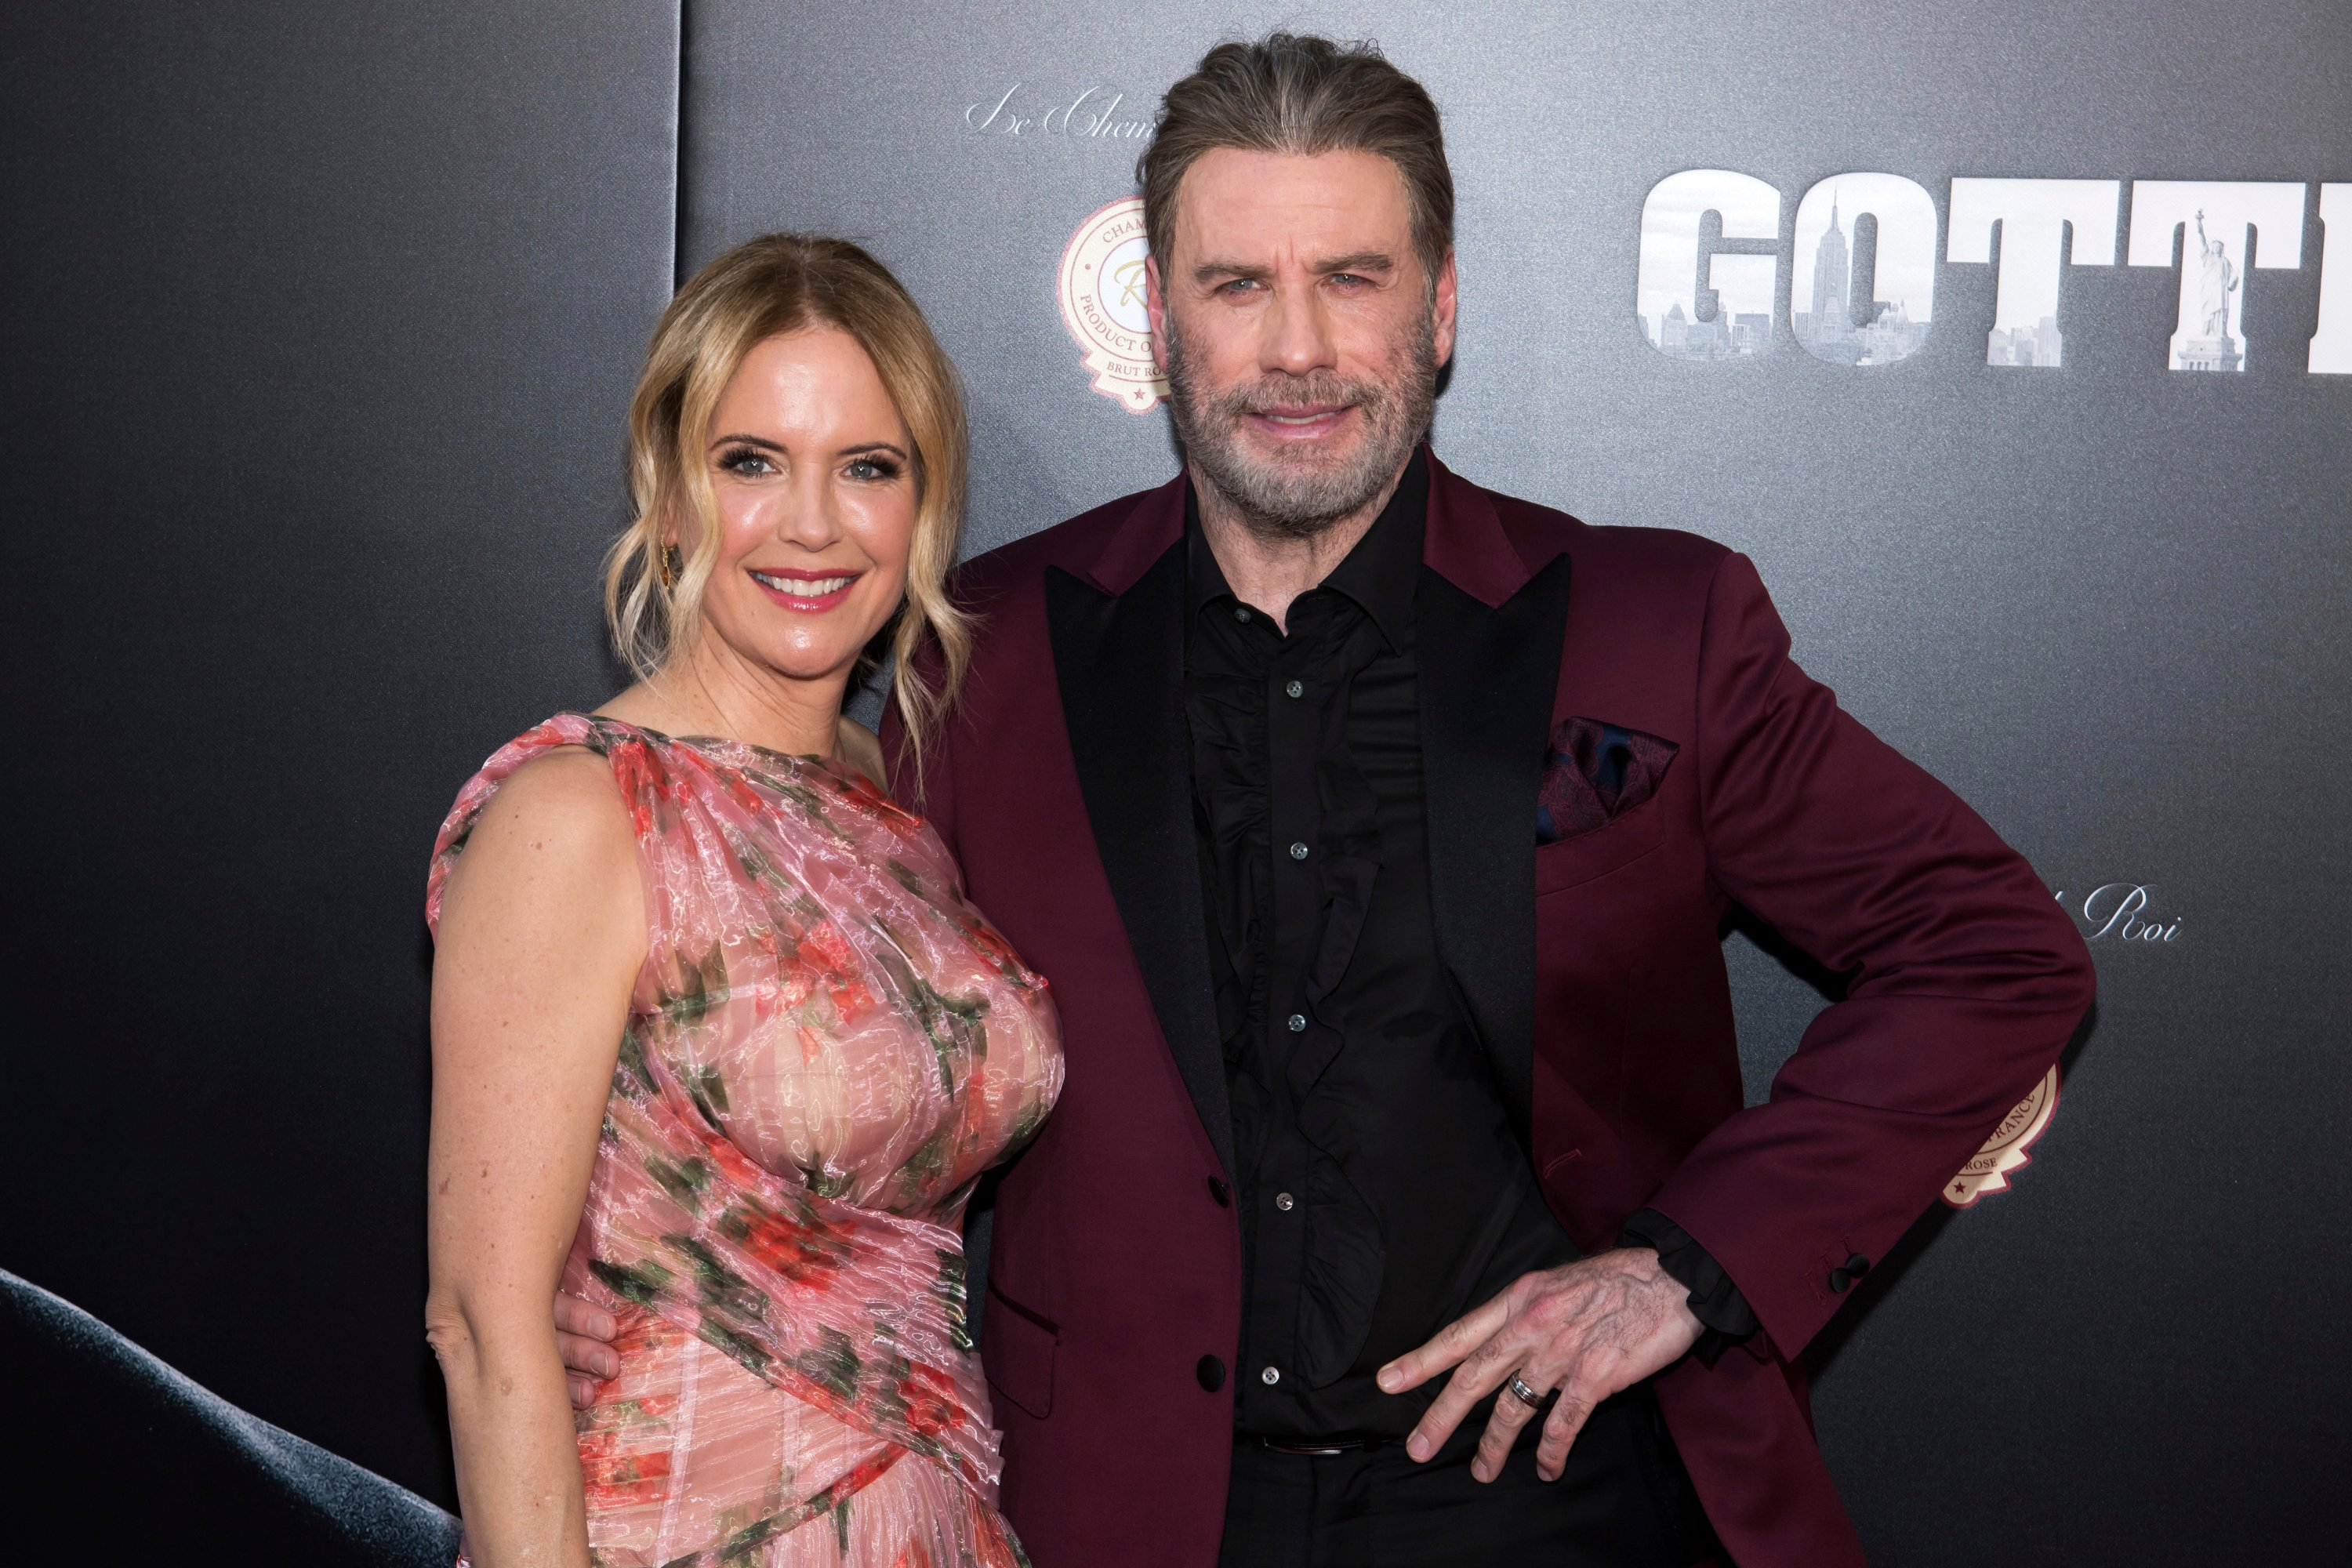 In this file photo, Kelly Preston and John Travolta attend the premiere of